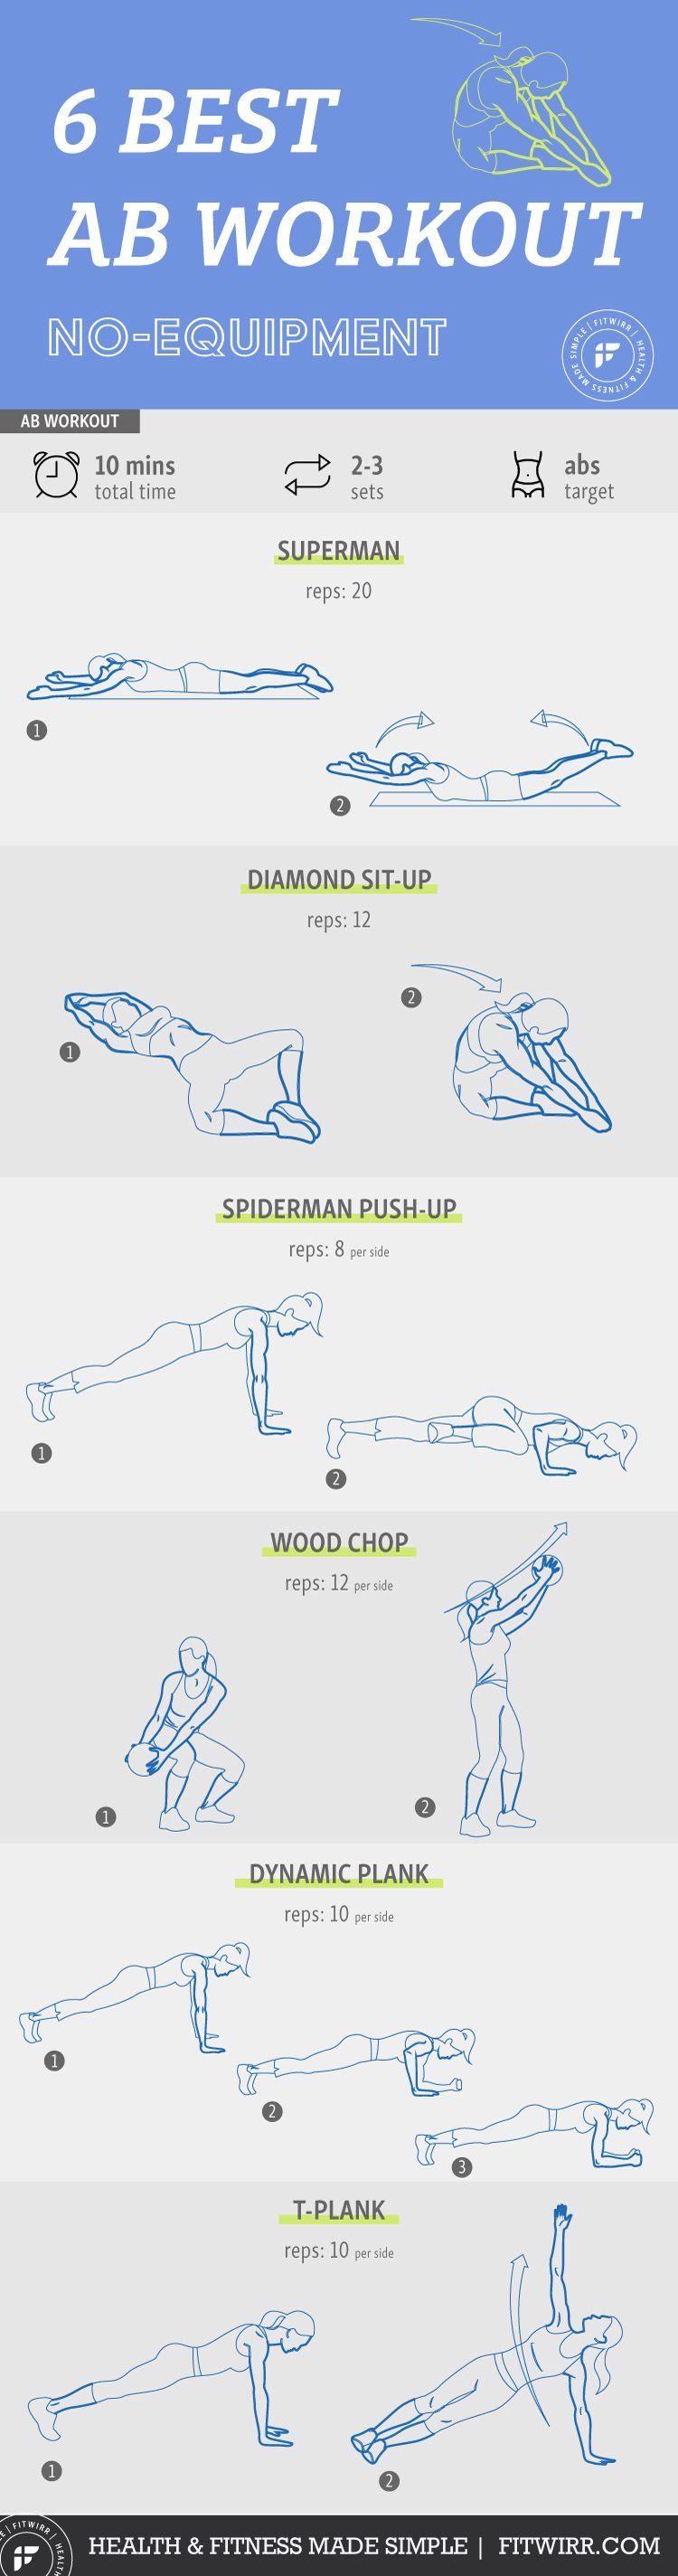 Best Abs Workouts: The Only 6 Exercises You'll Ever Need - Fitwirr